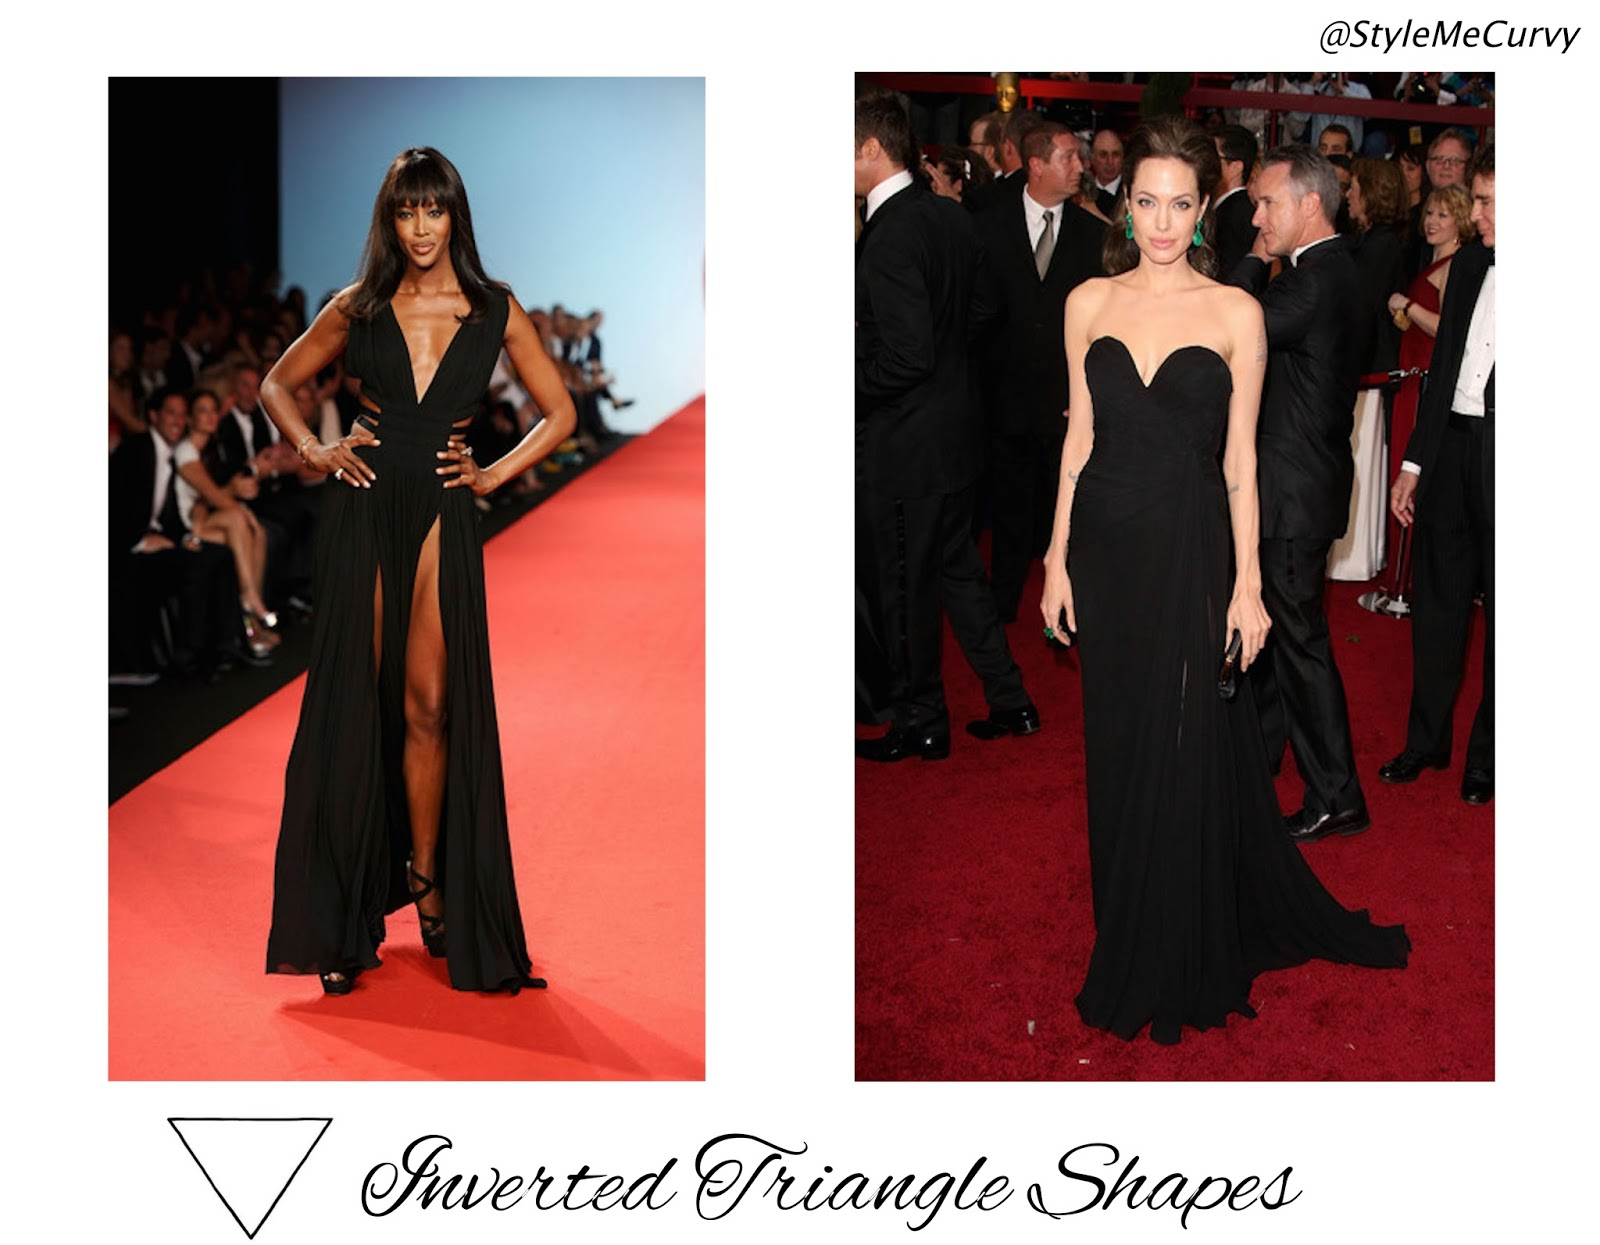 Triangle Shapes Naomi Campbell and Angelina Jolie